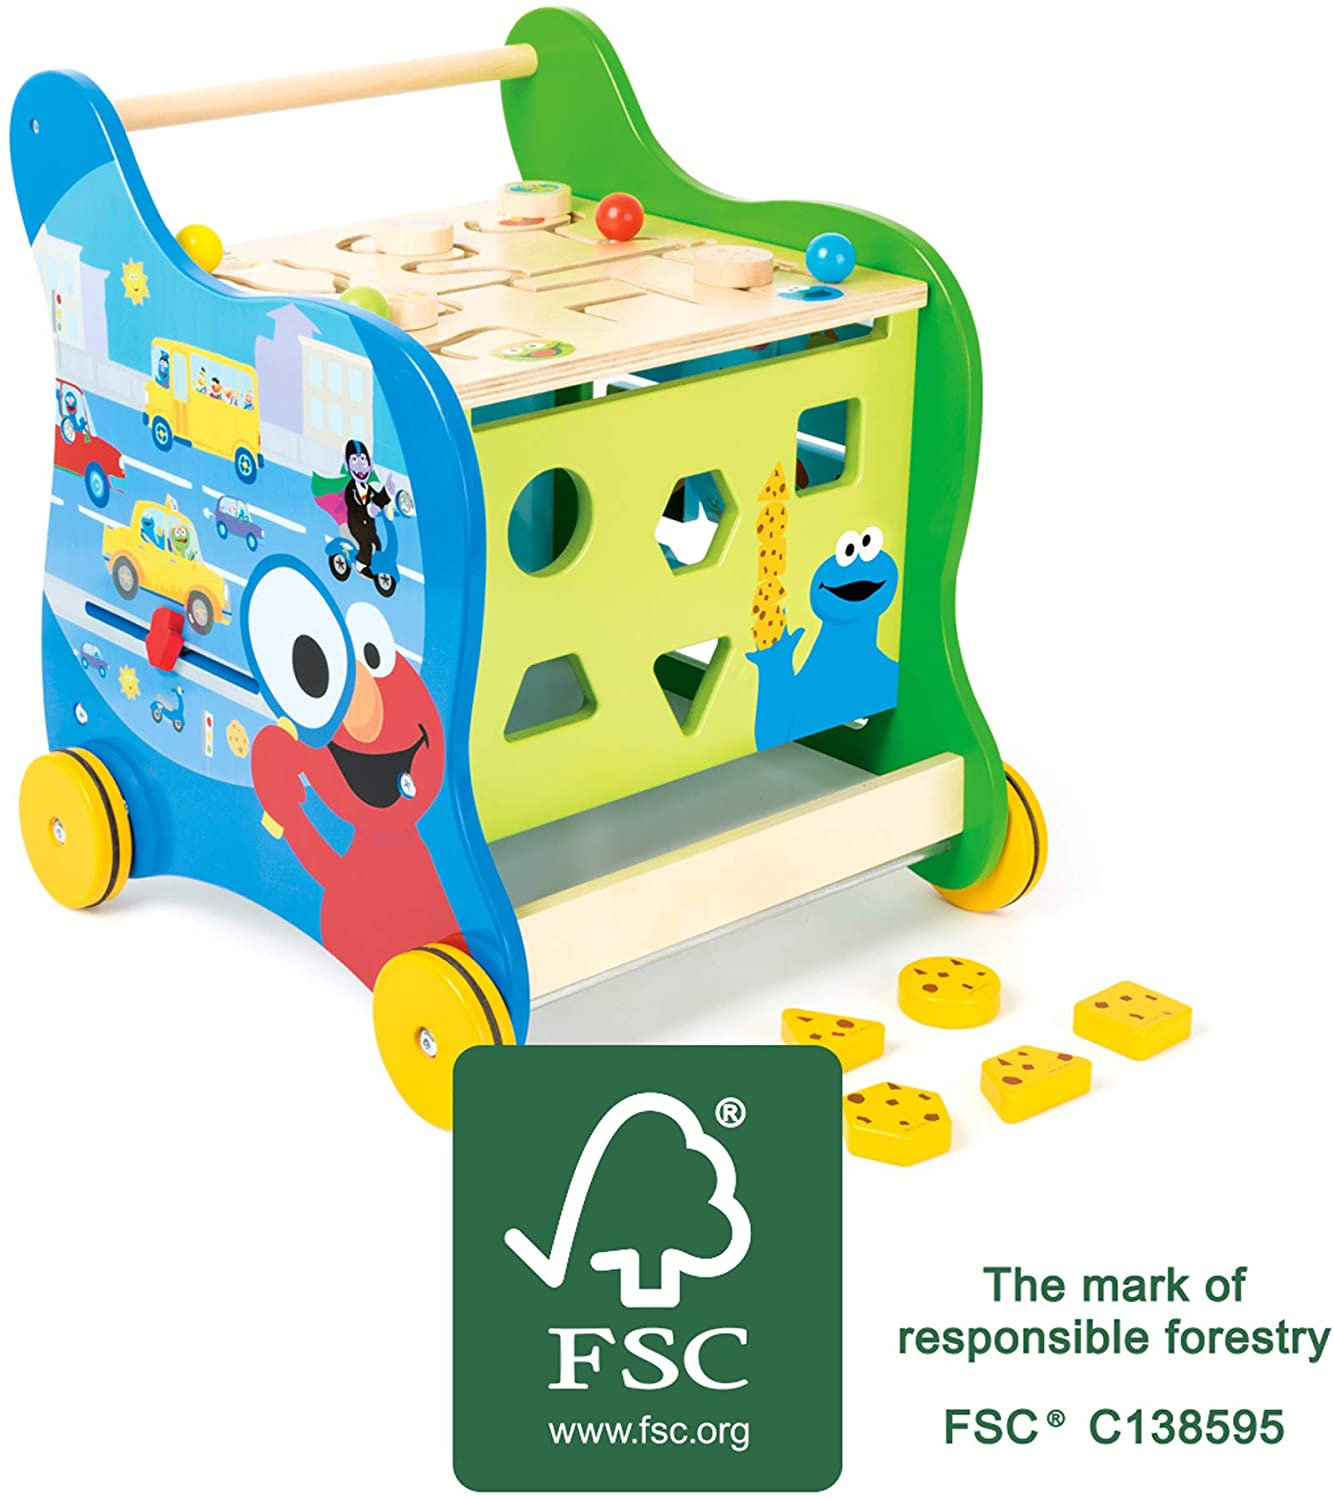 Small Foot 10969 Sesame Street Wooden Walker Multicolour a Walking Assistant for Toddlers Aged 12 Brand 100/% FSC-Certified Many Different Ways to Play a Baby Toy That Trains Motor Skills